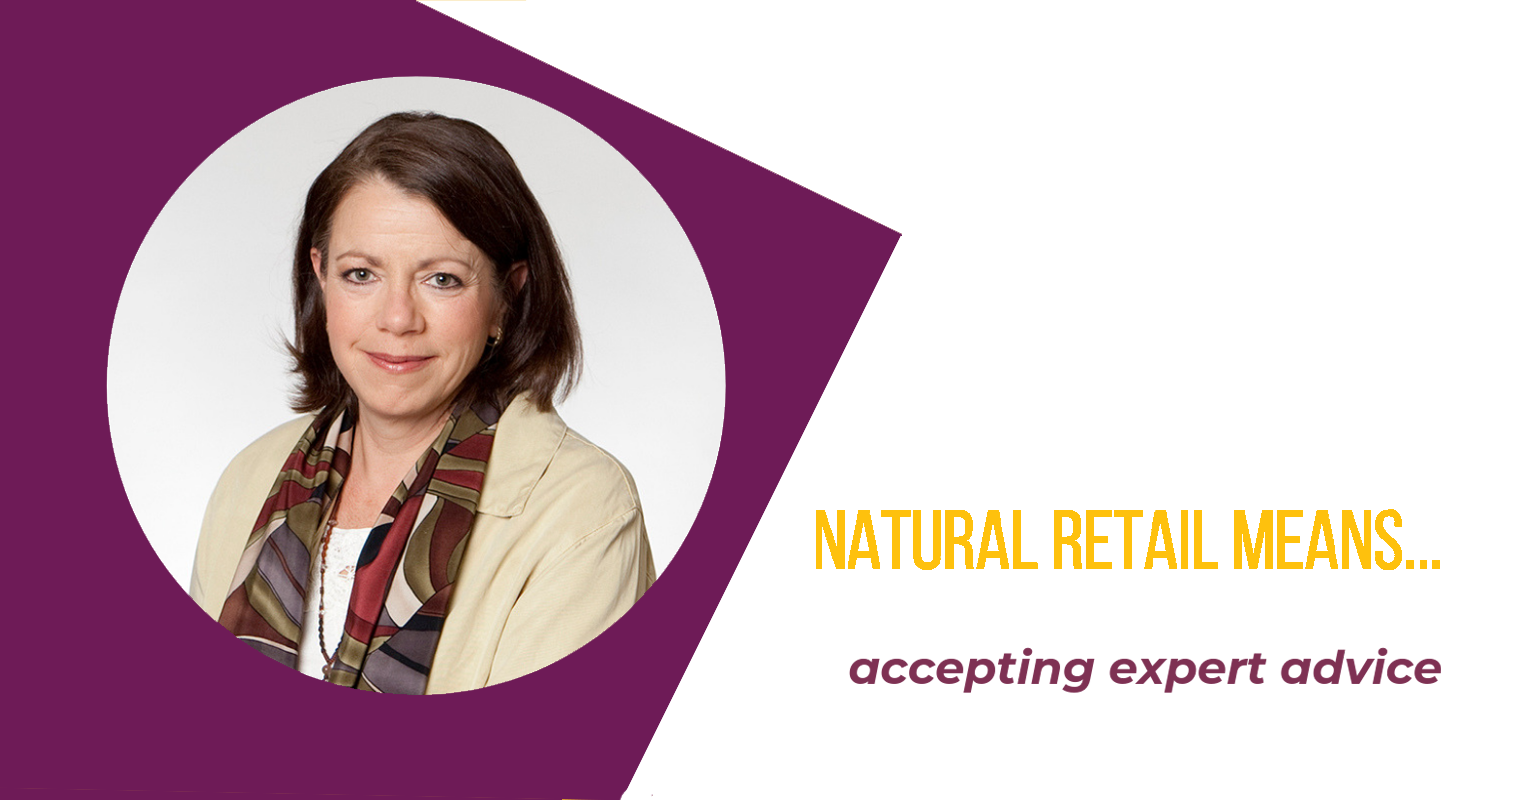 Corinne Shindelar, president and CEO of the Independent Natural Food Retailers Association